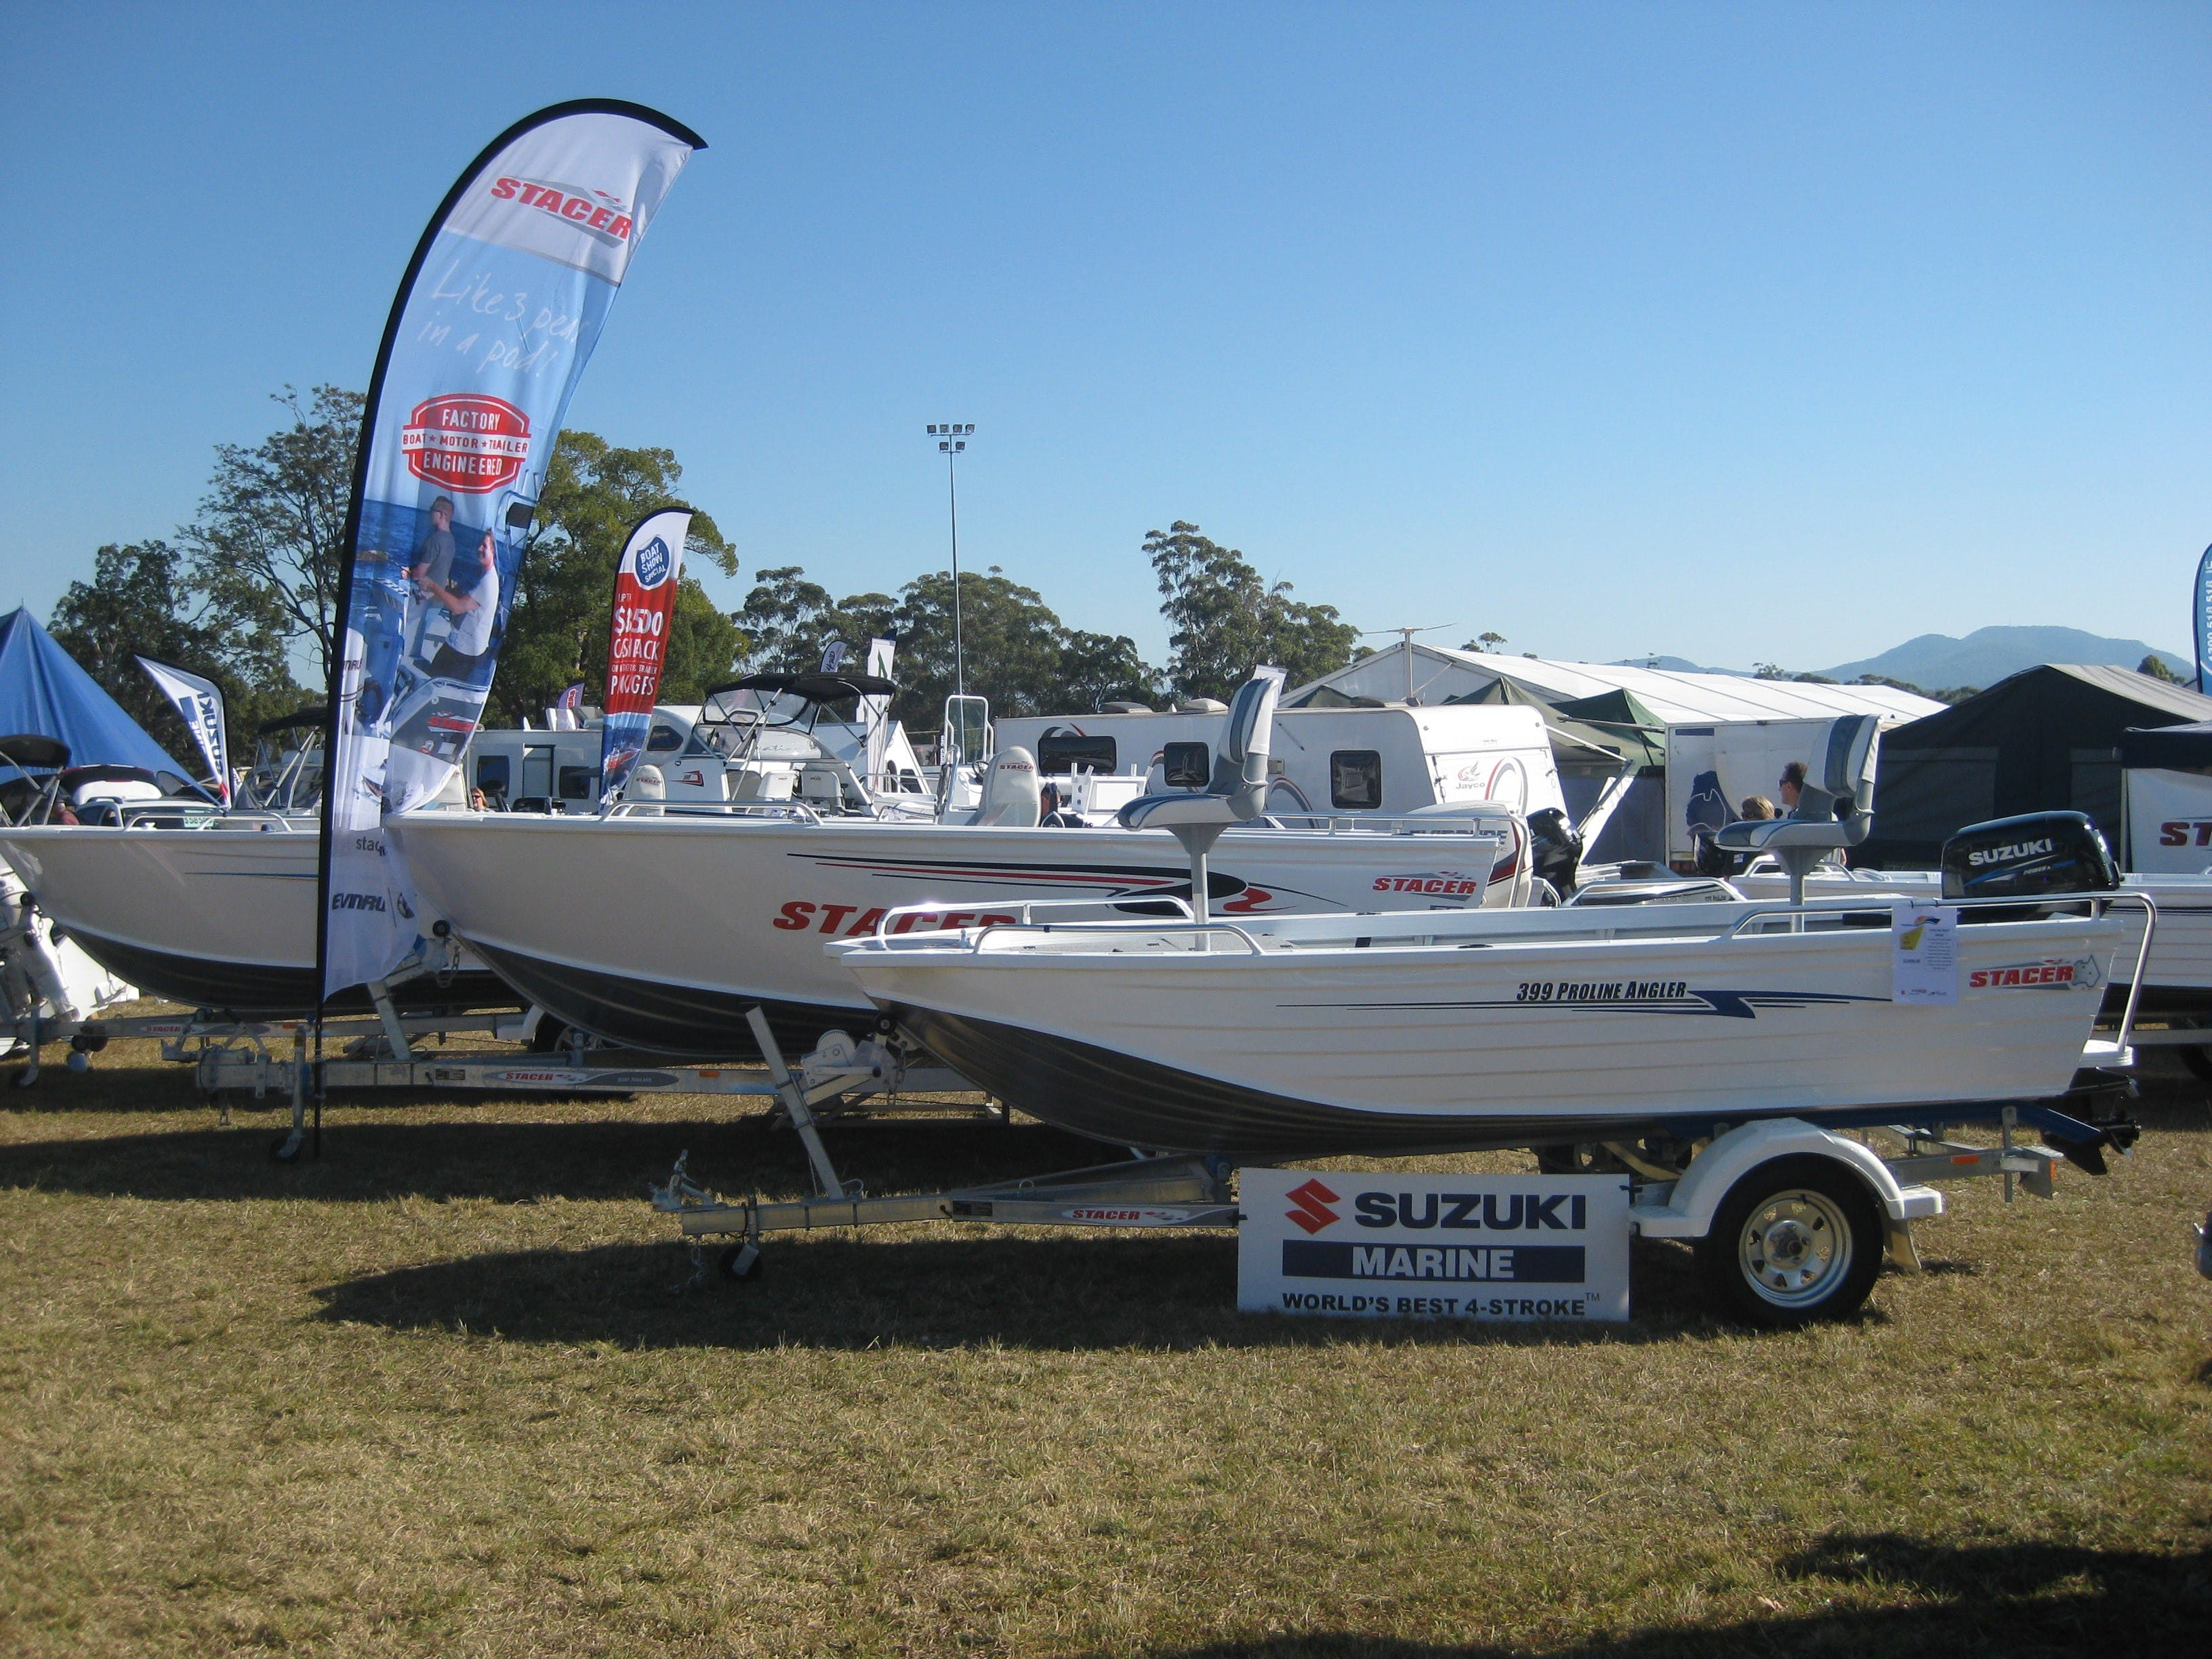 Mid North Coast Caravan Camping 4WD Fish and Boat Show - Accommodation Port Macquarie